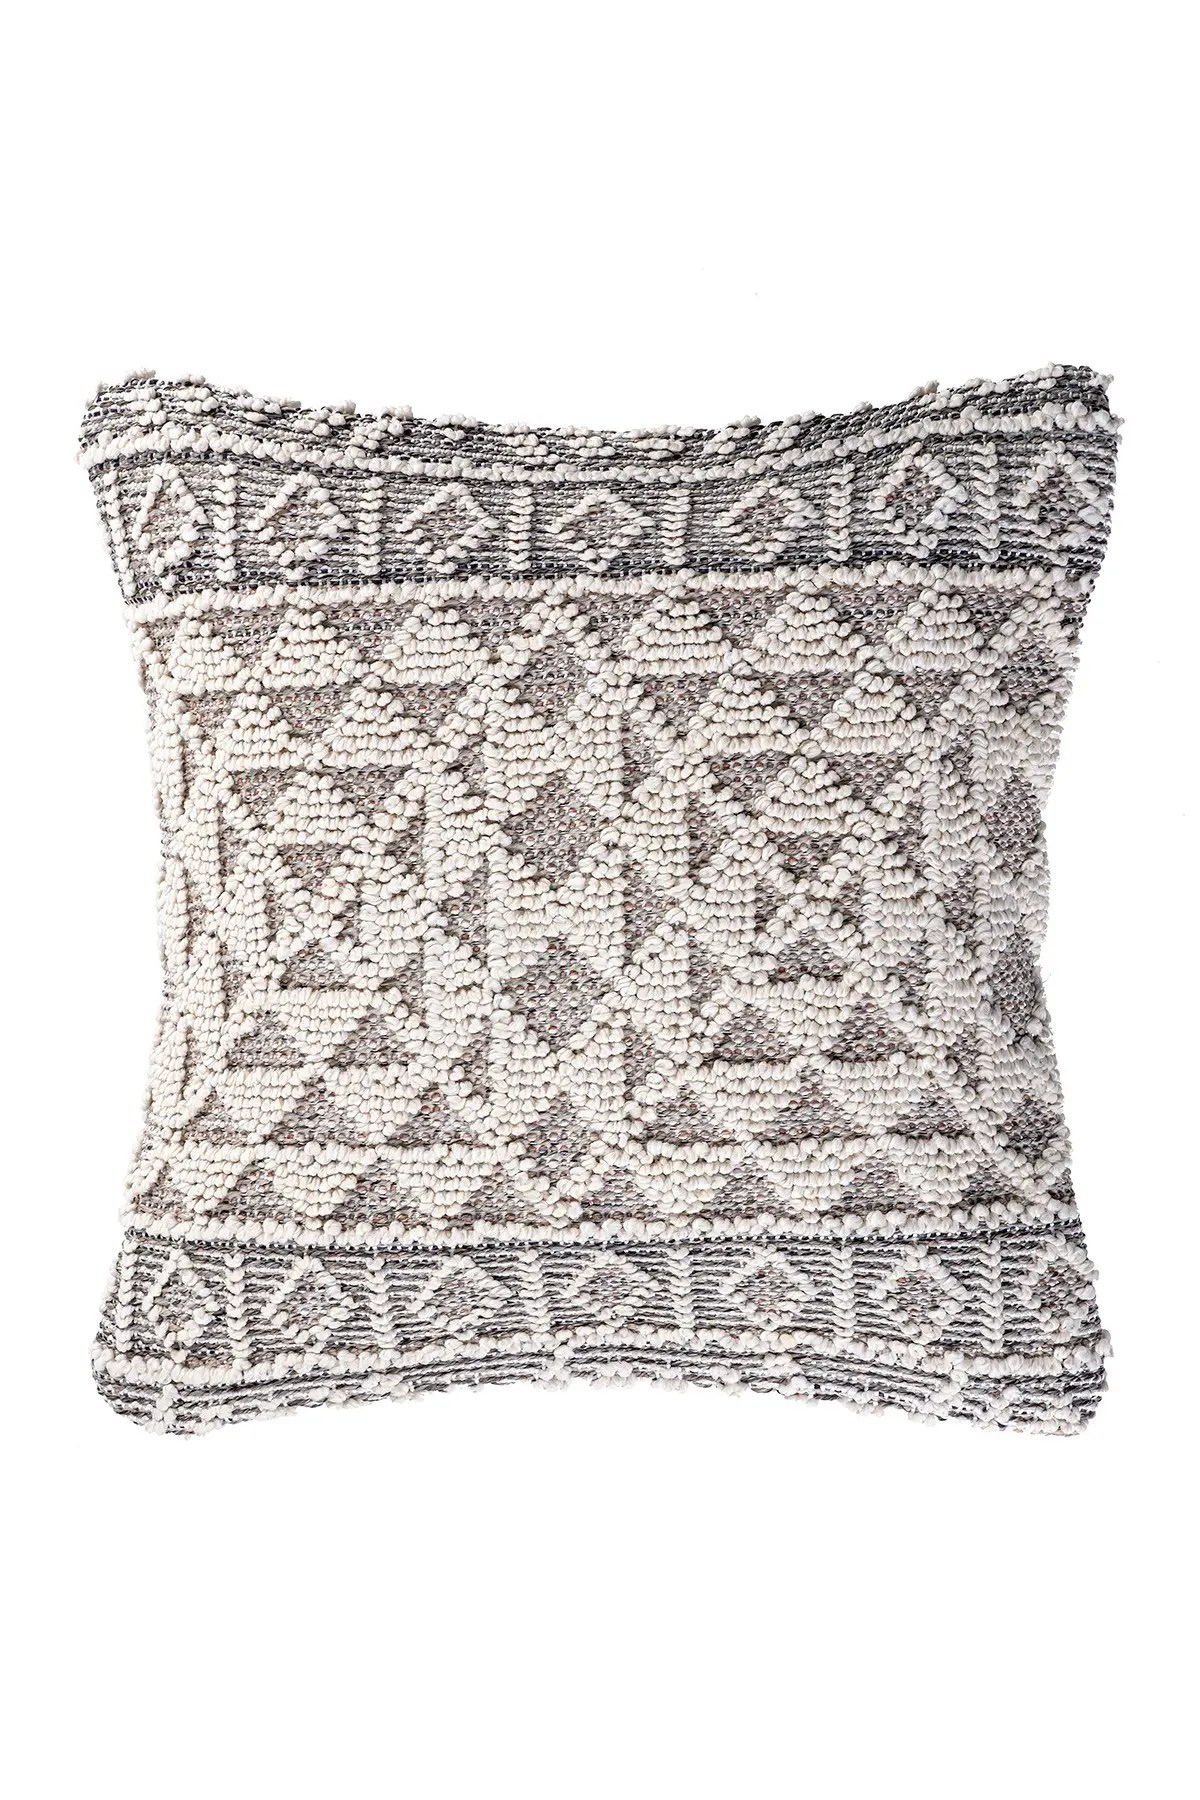 nuloom polis moroccan geometric throw pillow cover nordstrom rack